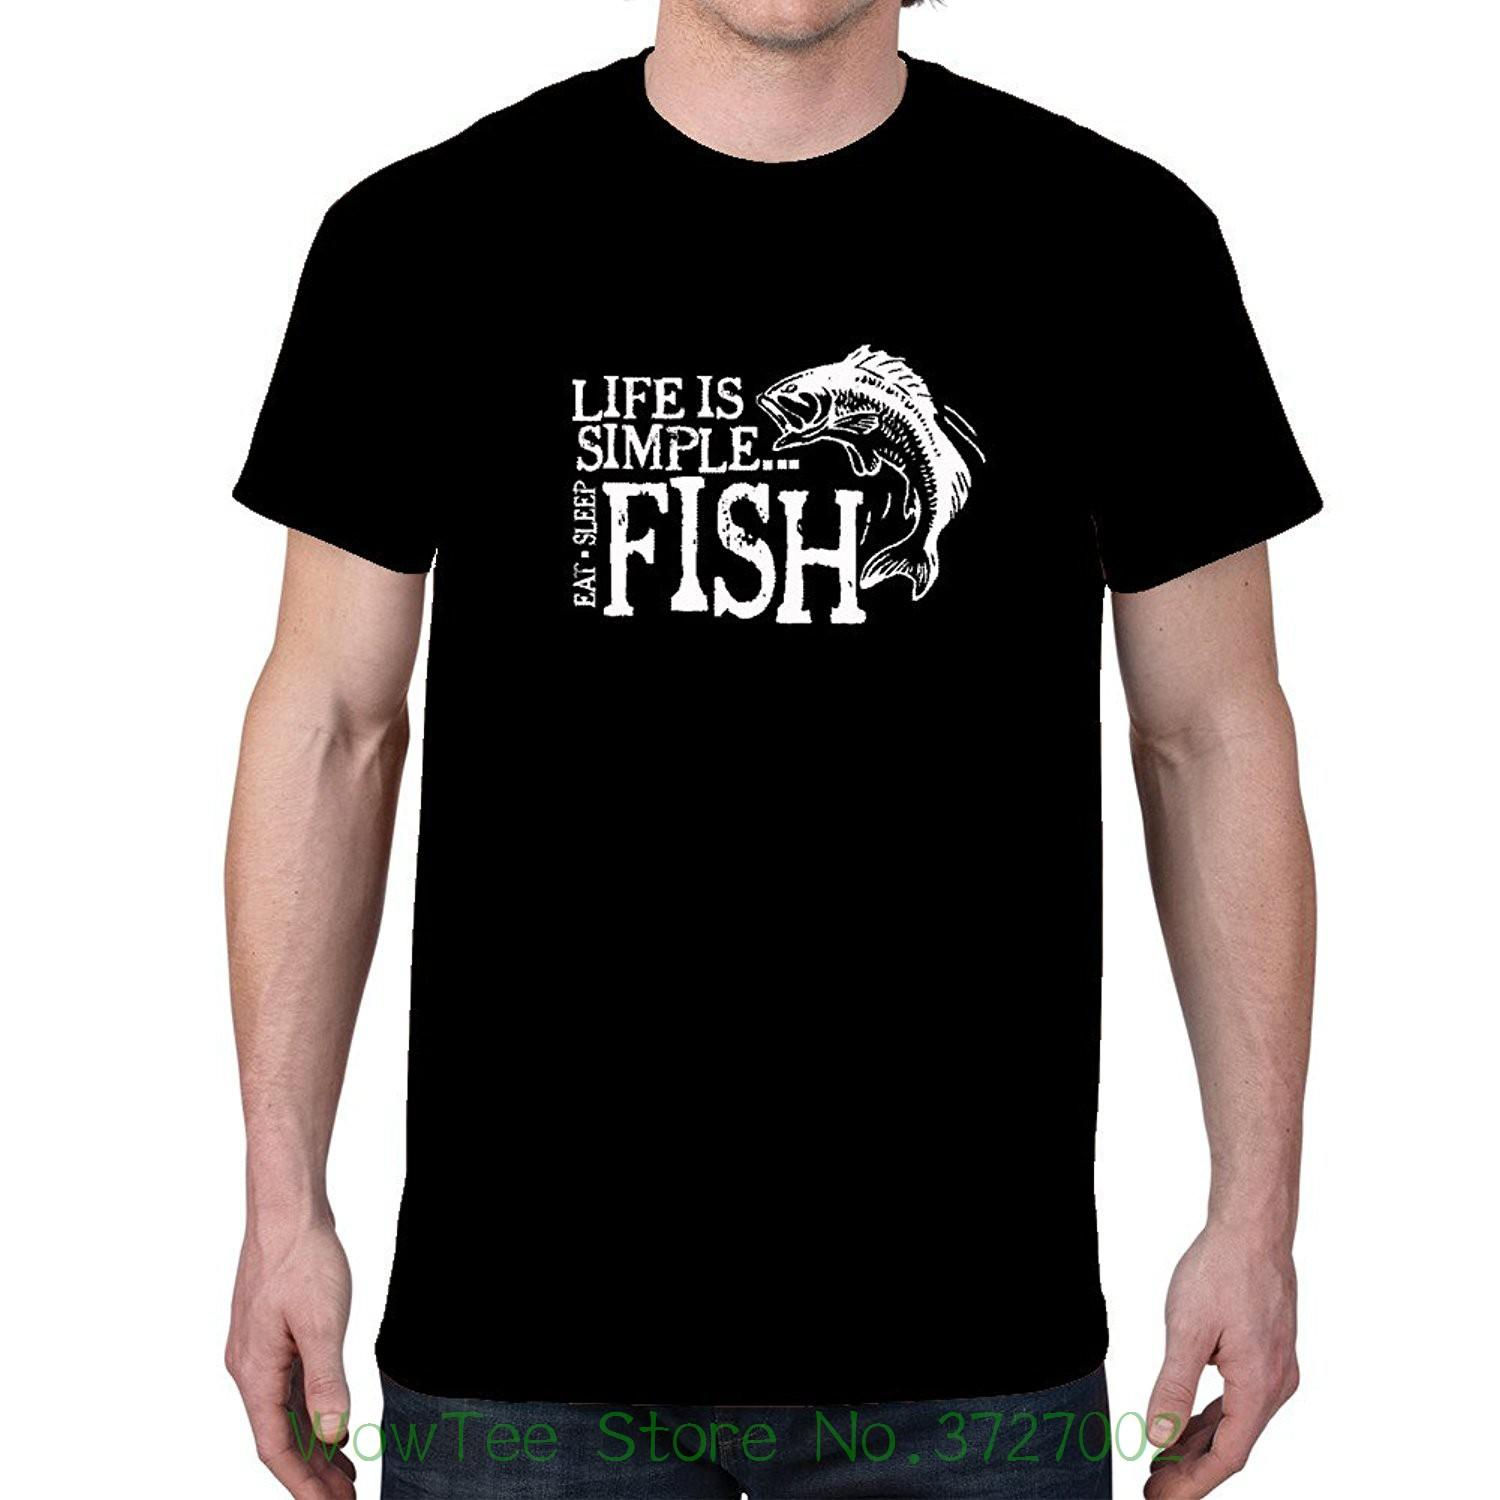 1b39b13bde4 Men S Life Is Simple Fish. Fisher T Shirt 100% Cotton Short Sleeve O Neck Tops  Tee Shirts Mens Formal Shirts Buy T Shirts Online From Wowteestore